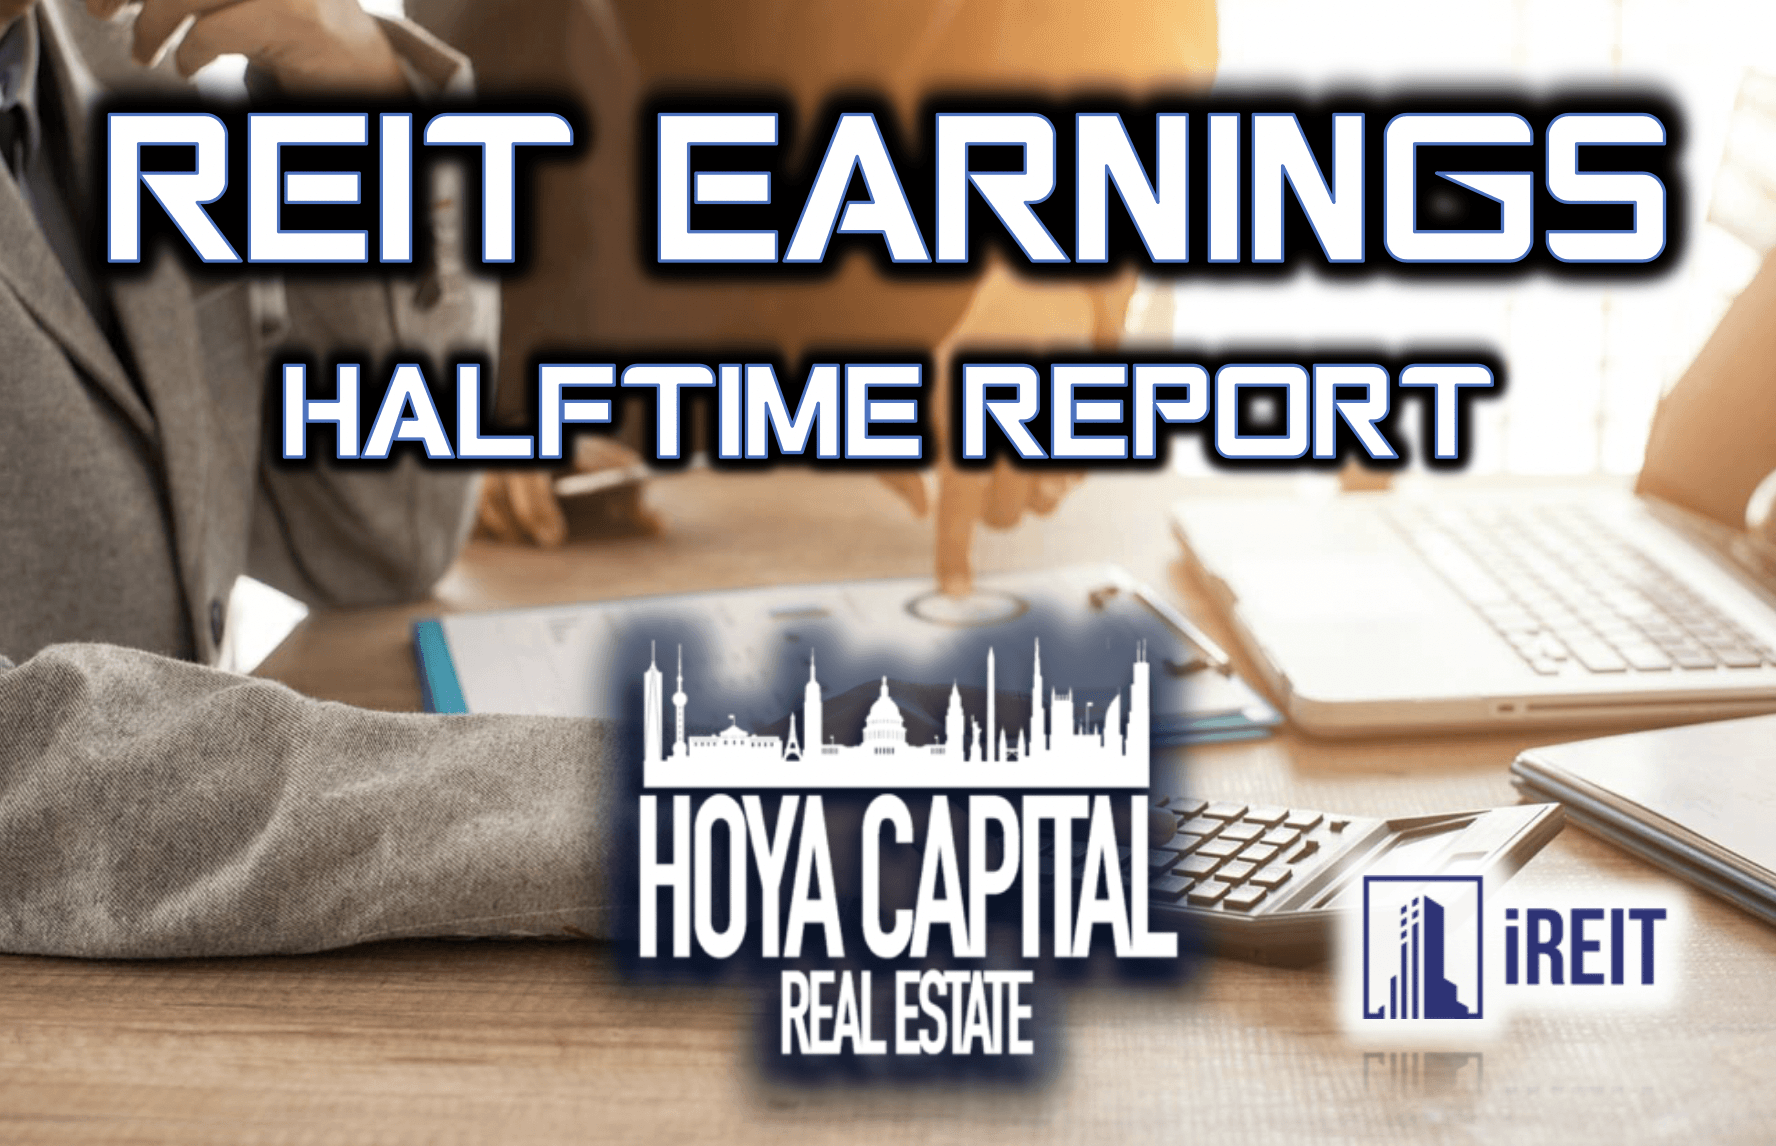 REIT Earnings Halftime Report: Dividend Cuts, No More